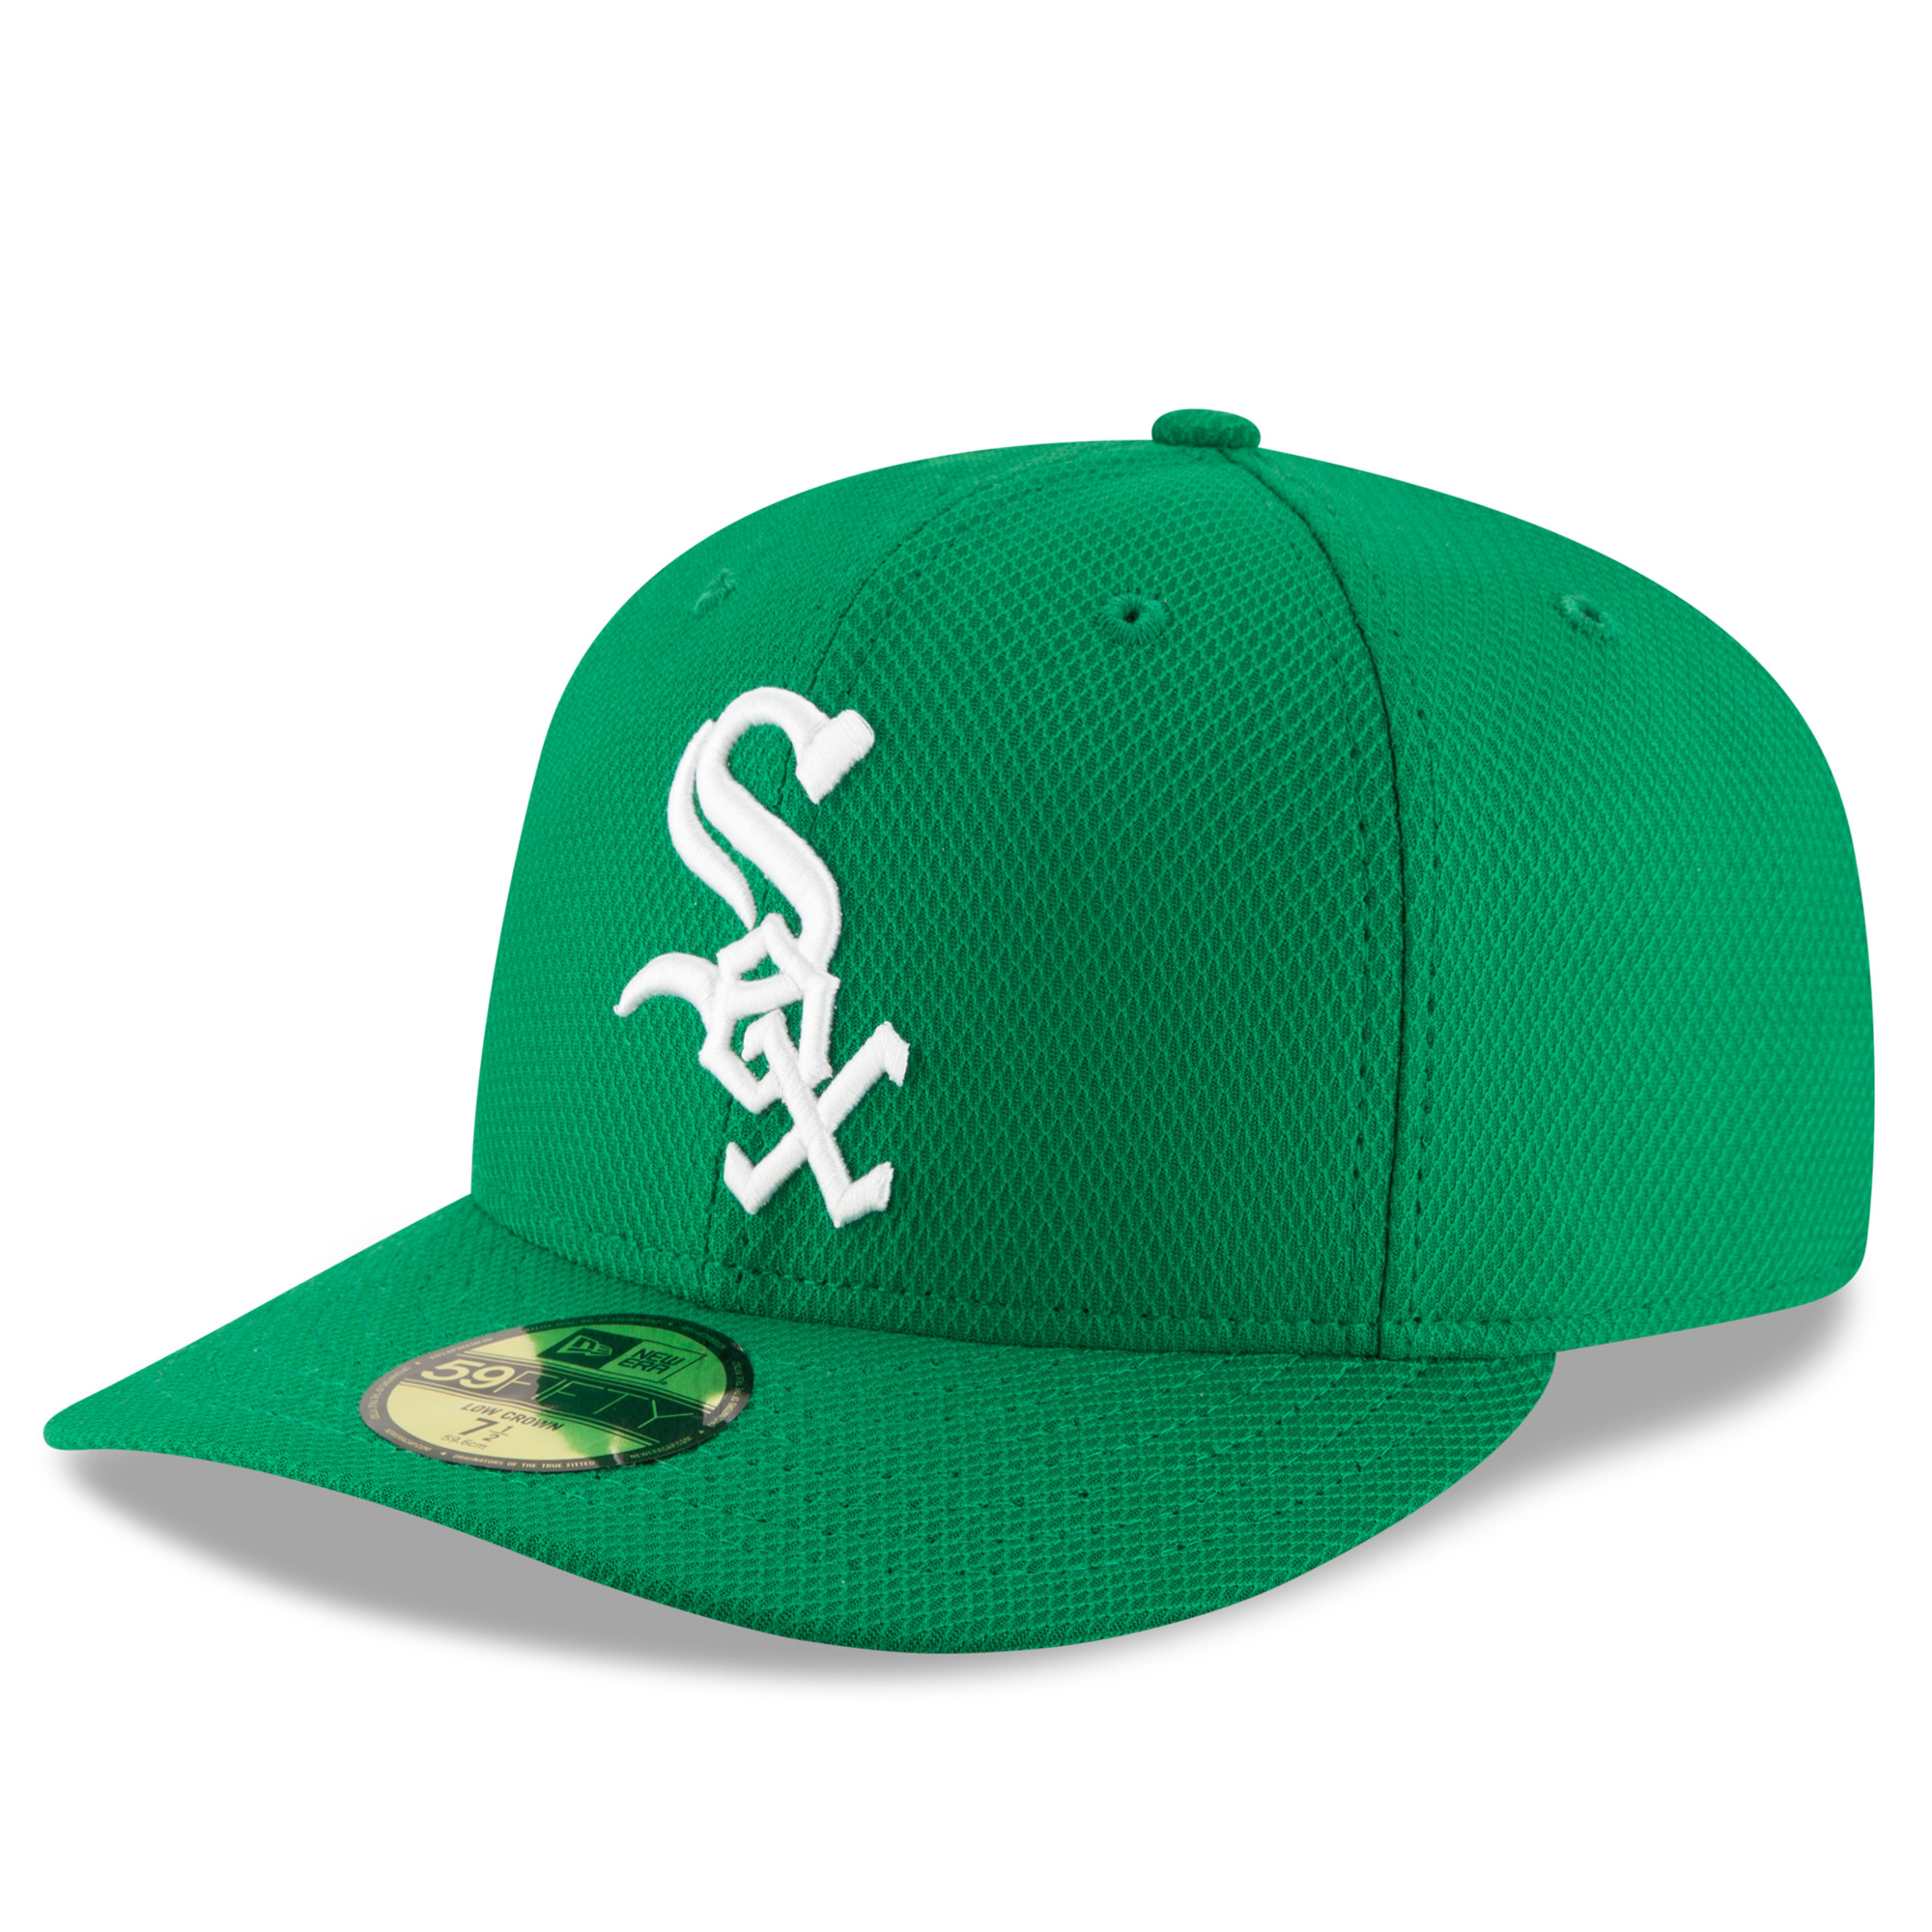 Chicago White Sox New Era St. Patrick's Day Diamond Era Low Profile 59FIFTY Fitted Hat - Green